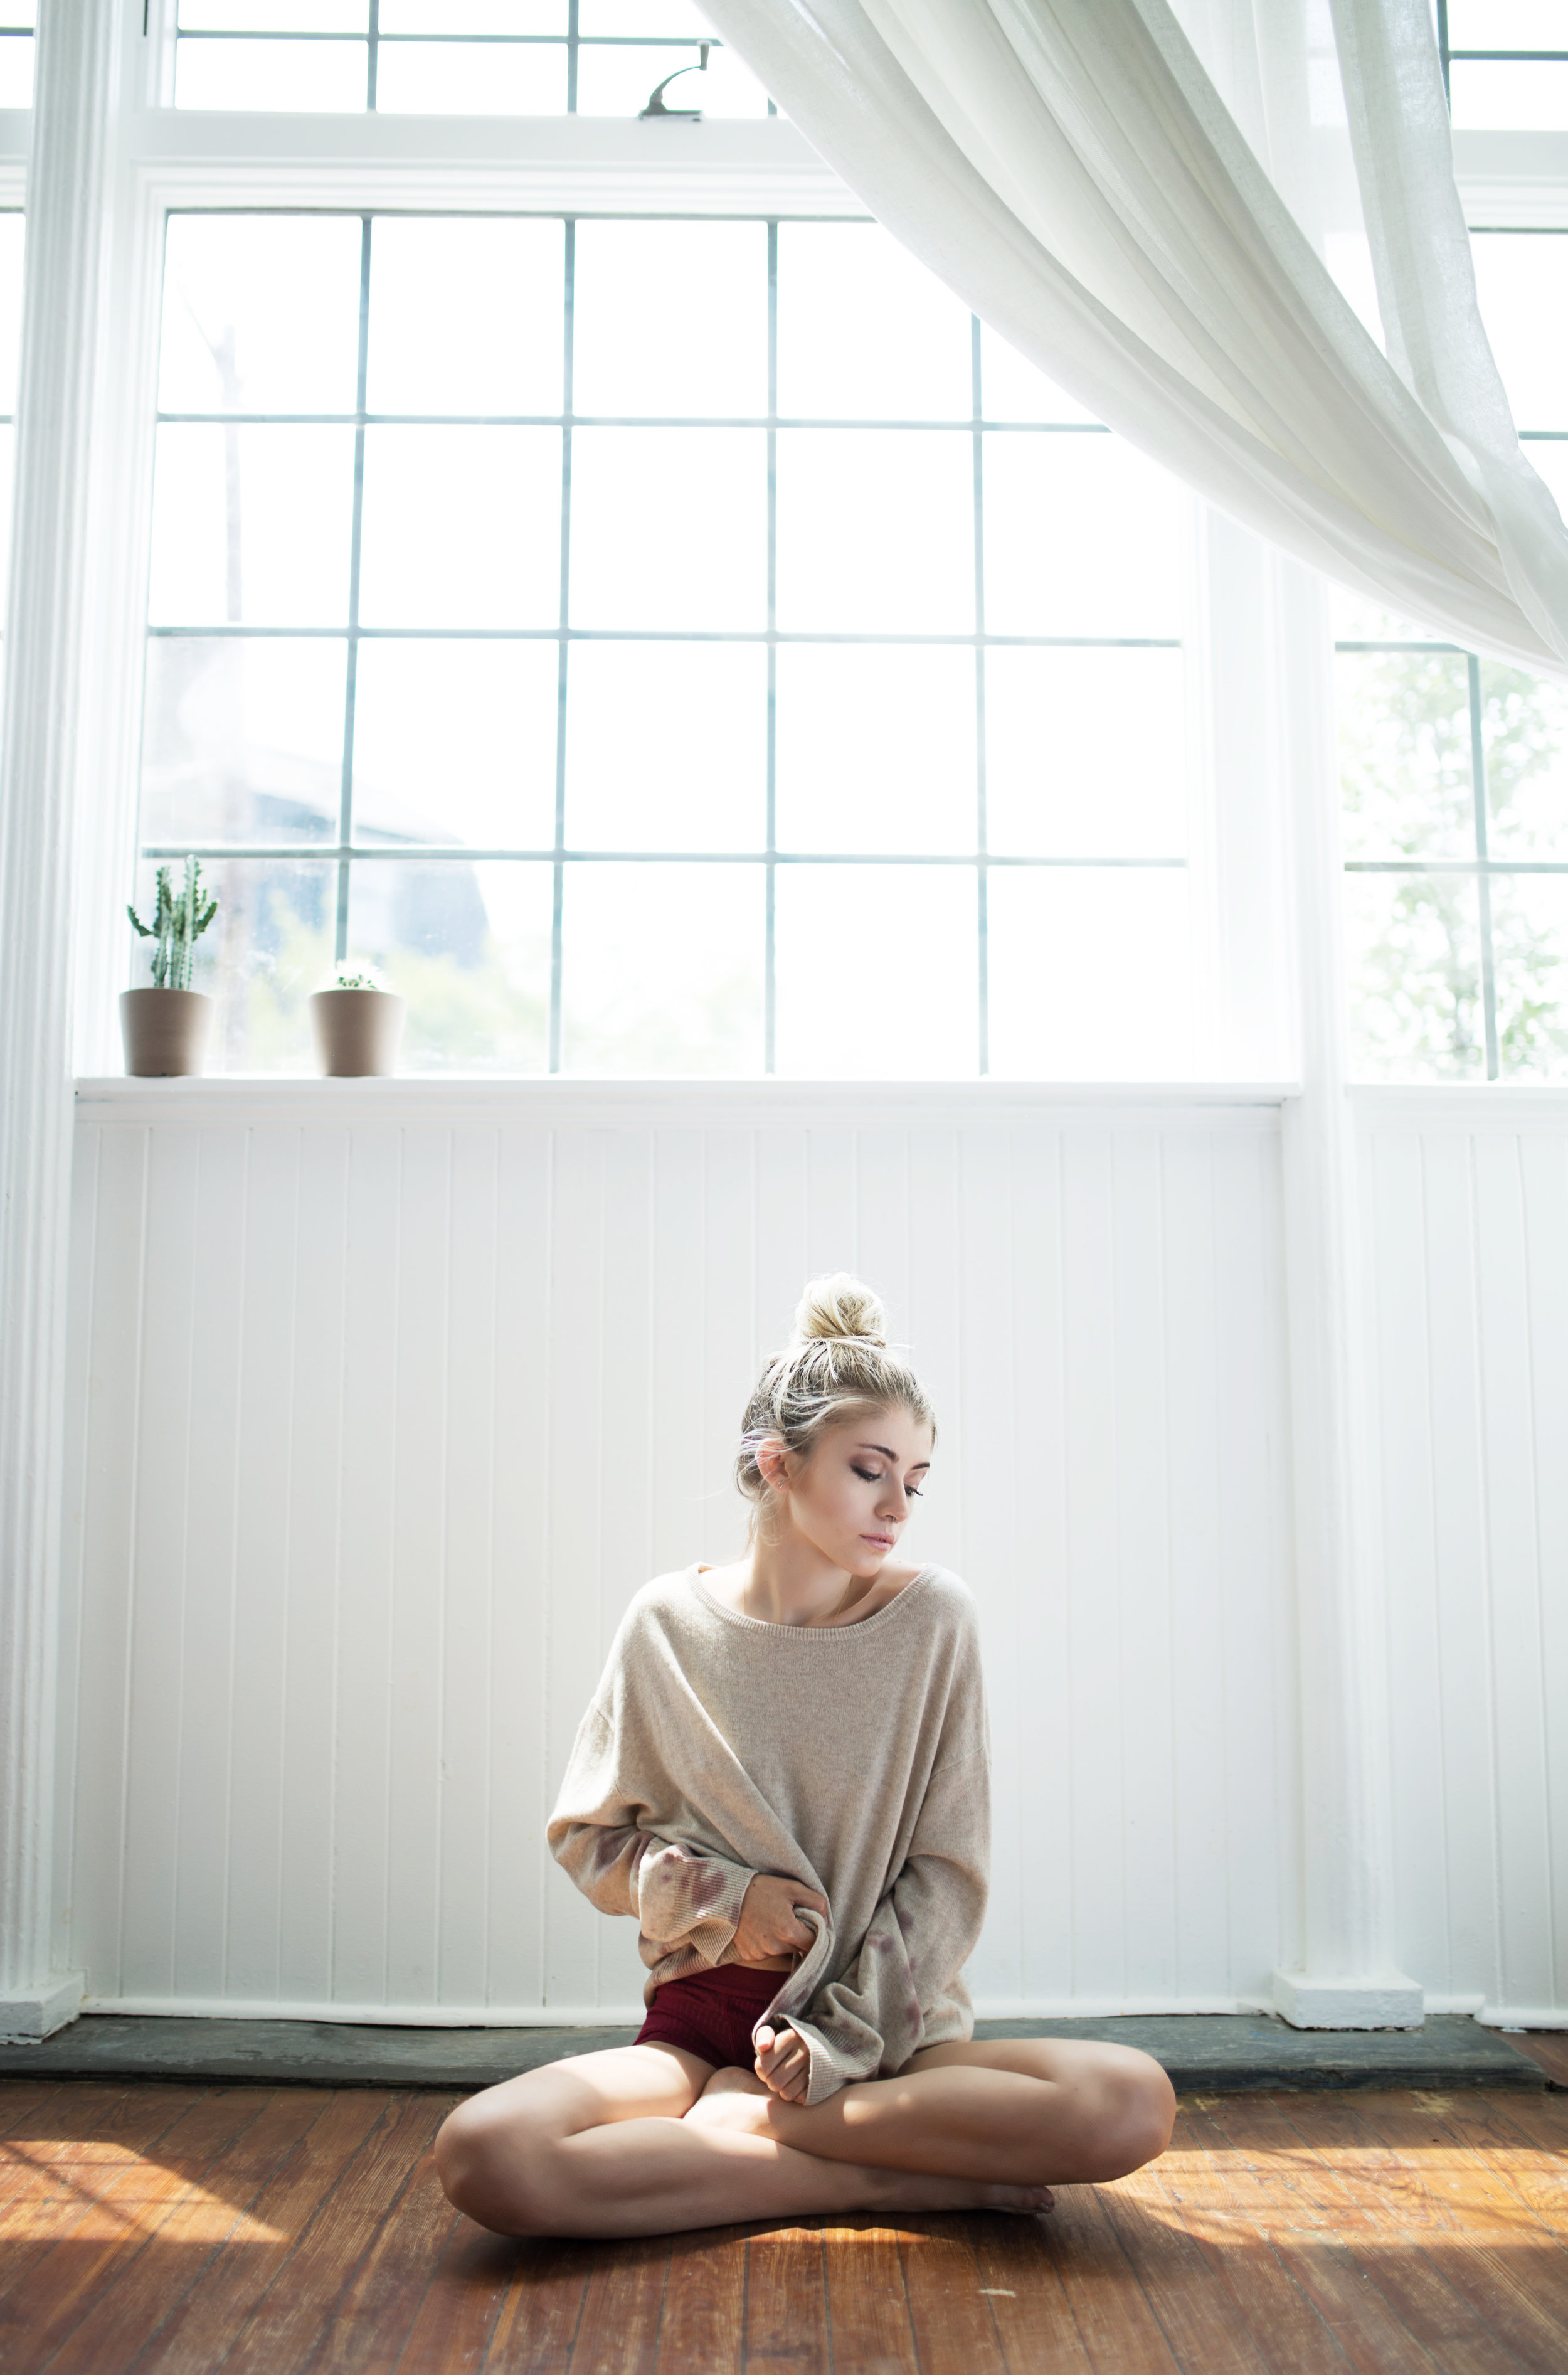 BLOGGER  KENNEDY DAWN  STYLED BY ALEXIS CORRY  PHOTOGRAPHY BY  MERRITT LEE